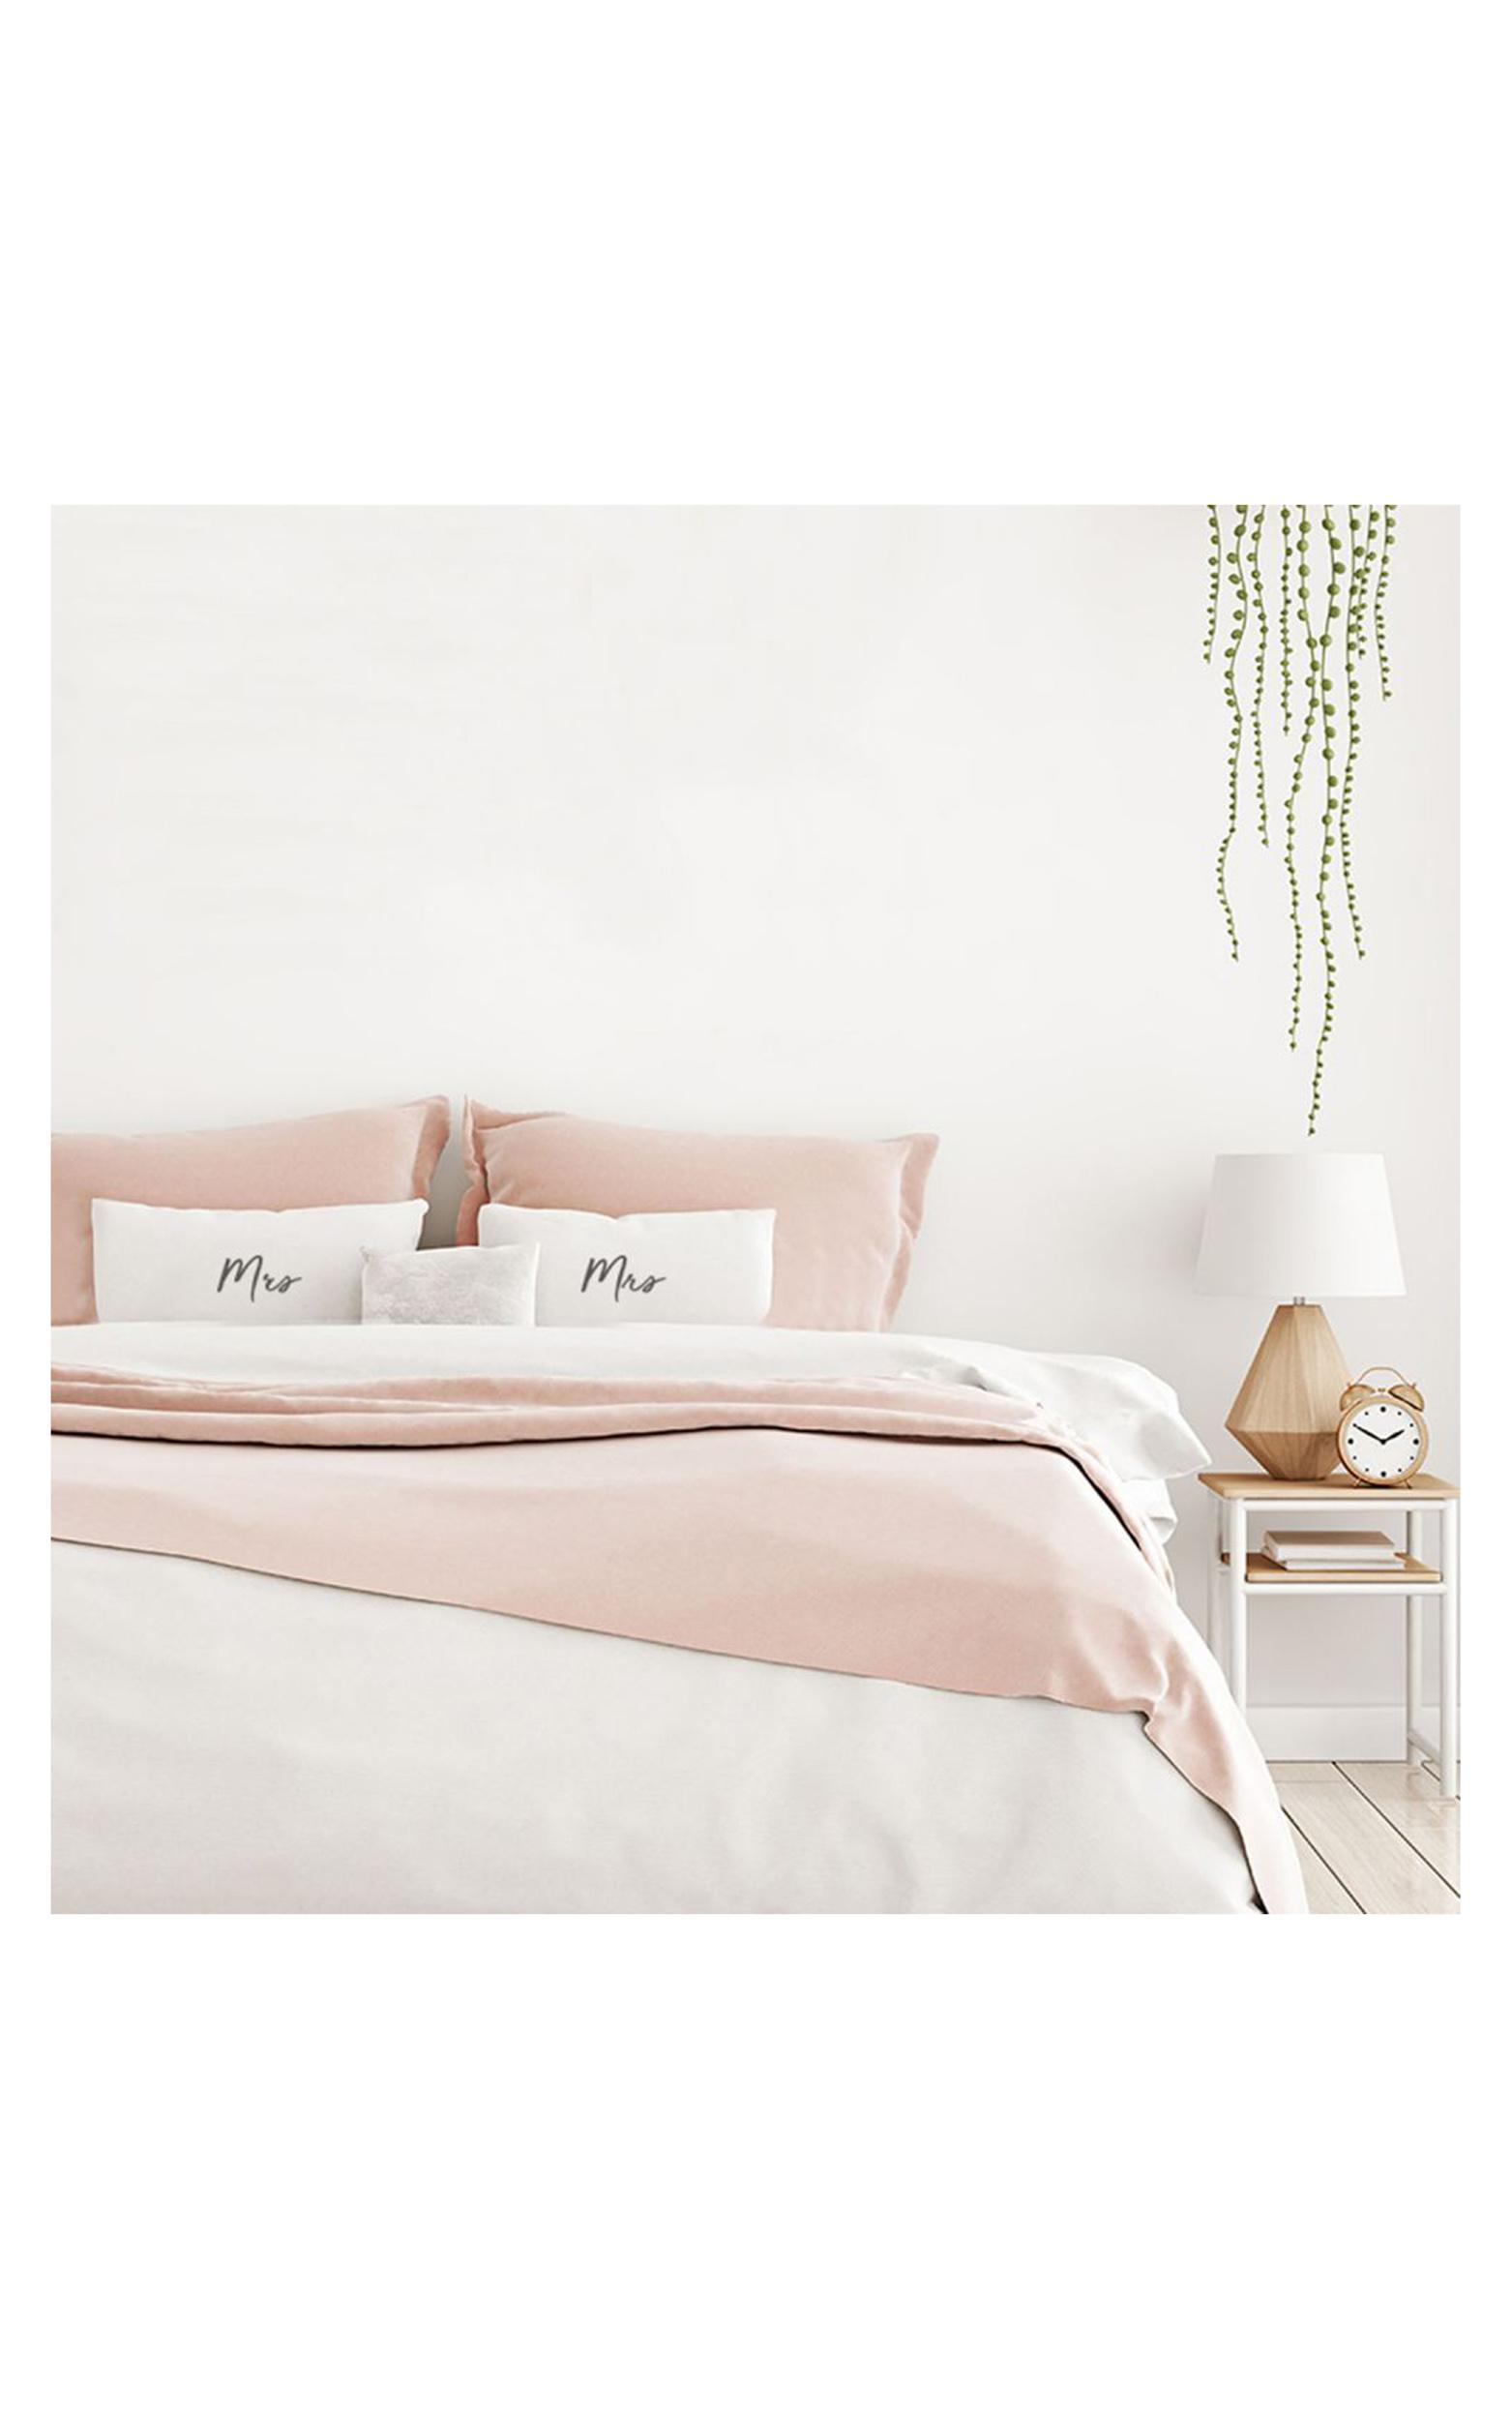 Mrs & Mrs Pillow Case Set In White, , hi-res image number null